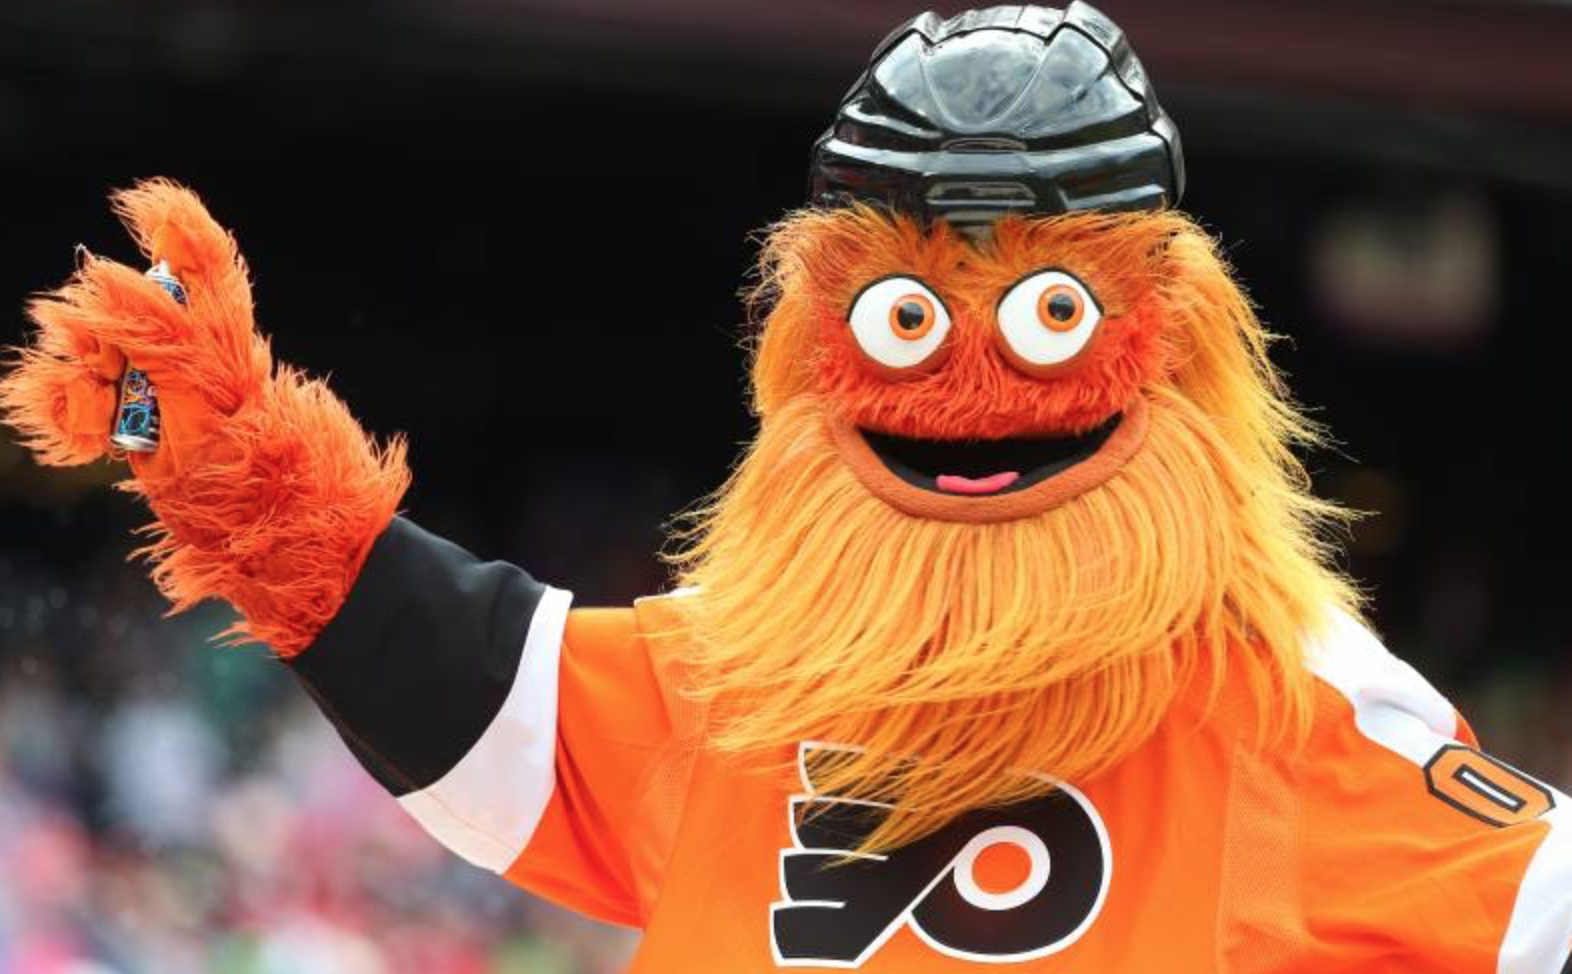 Police investigate hockey mascot for allegedly sucker punching a kid